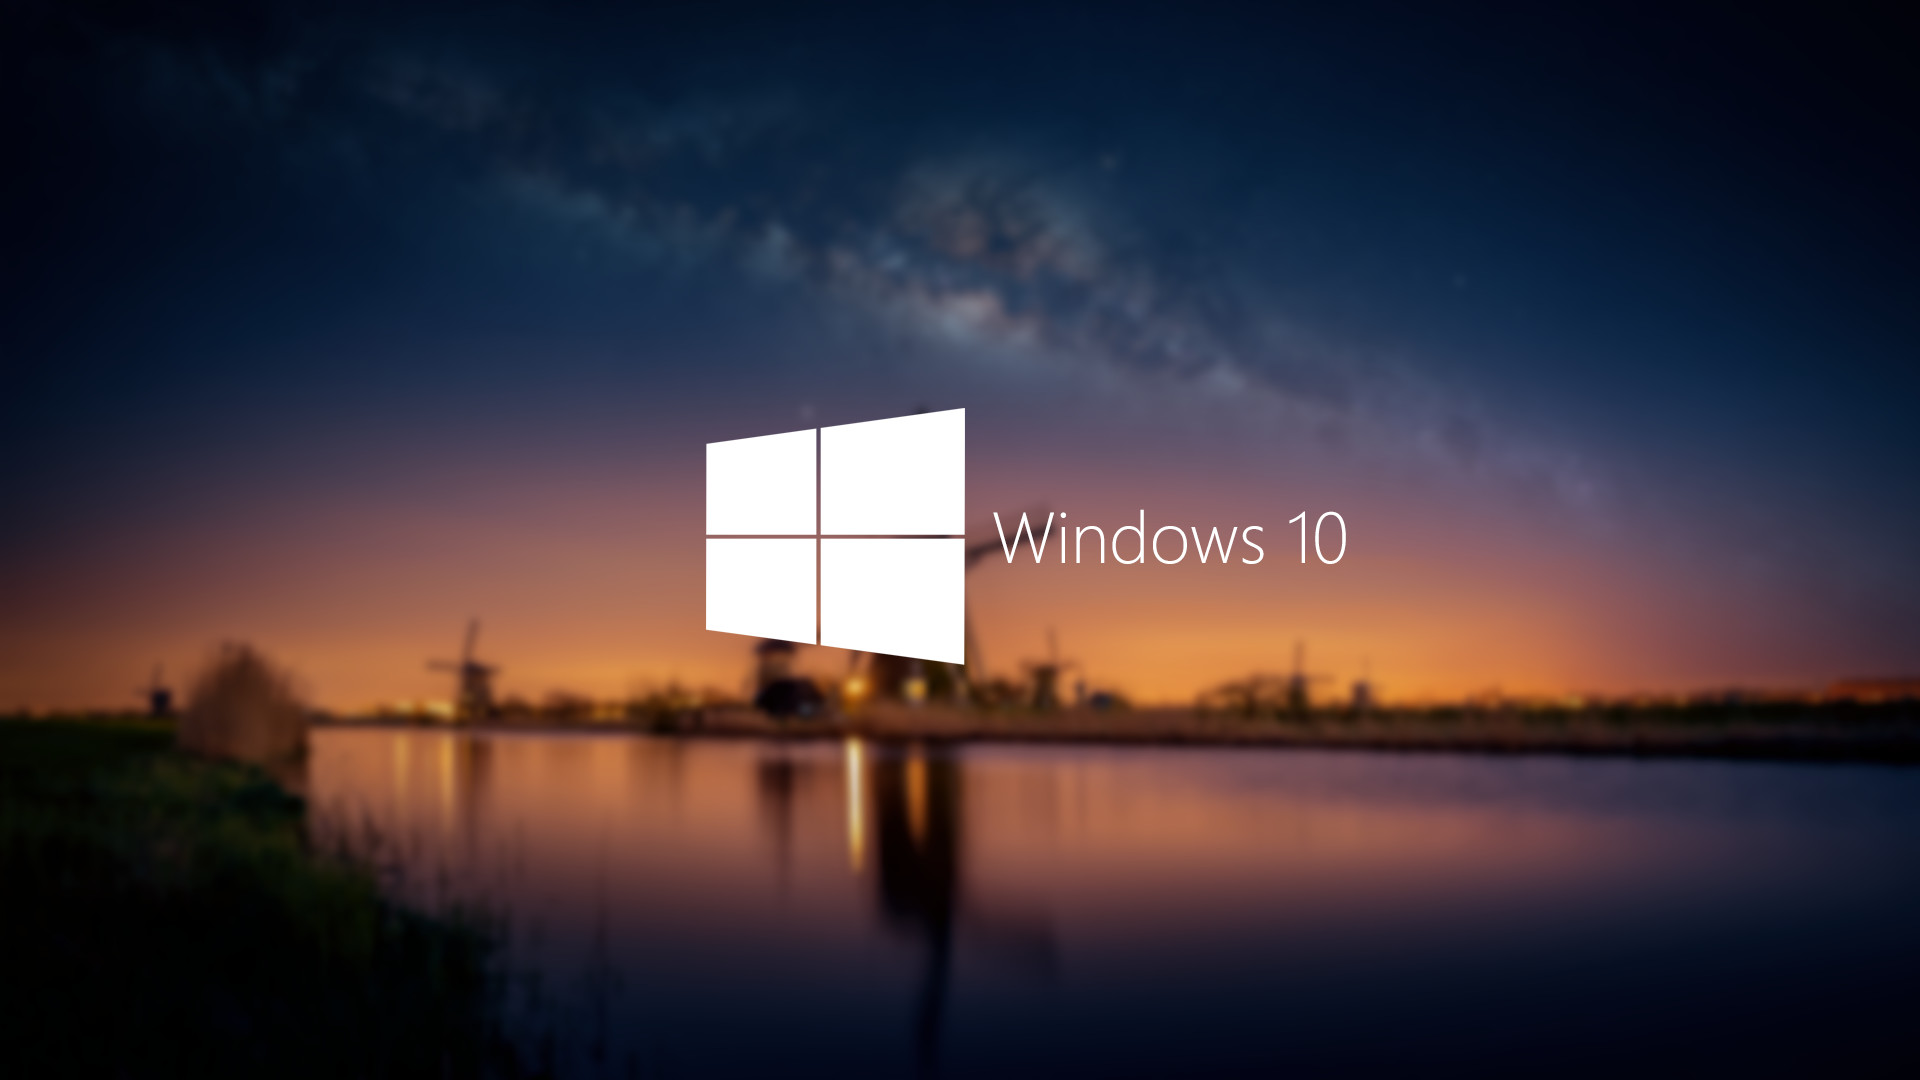 Amazing Windows 10 Wallpapers 68 Images